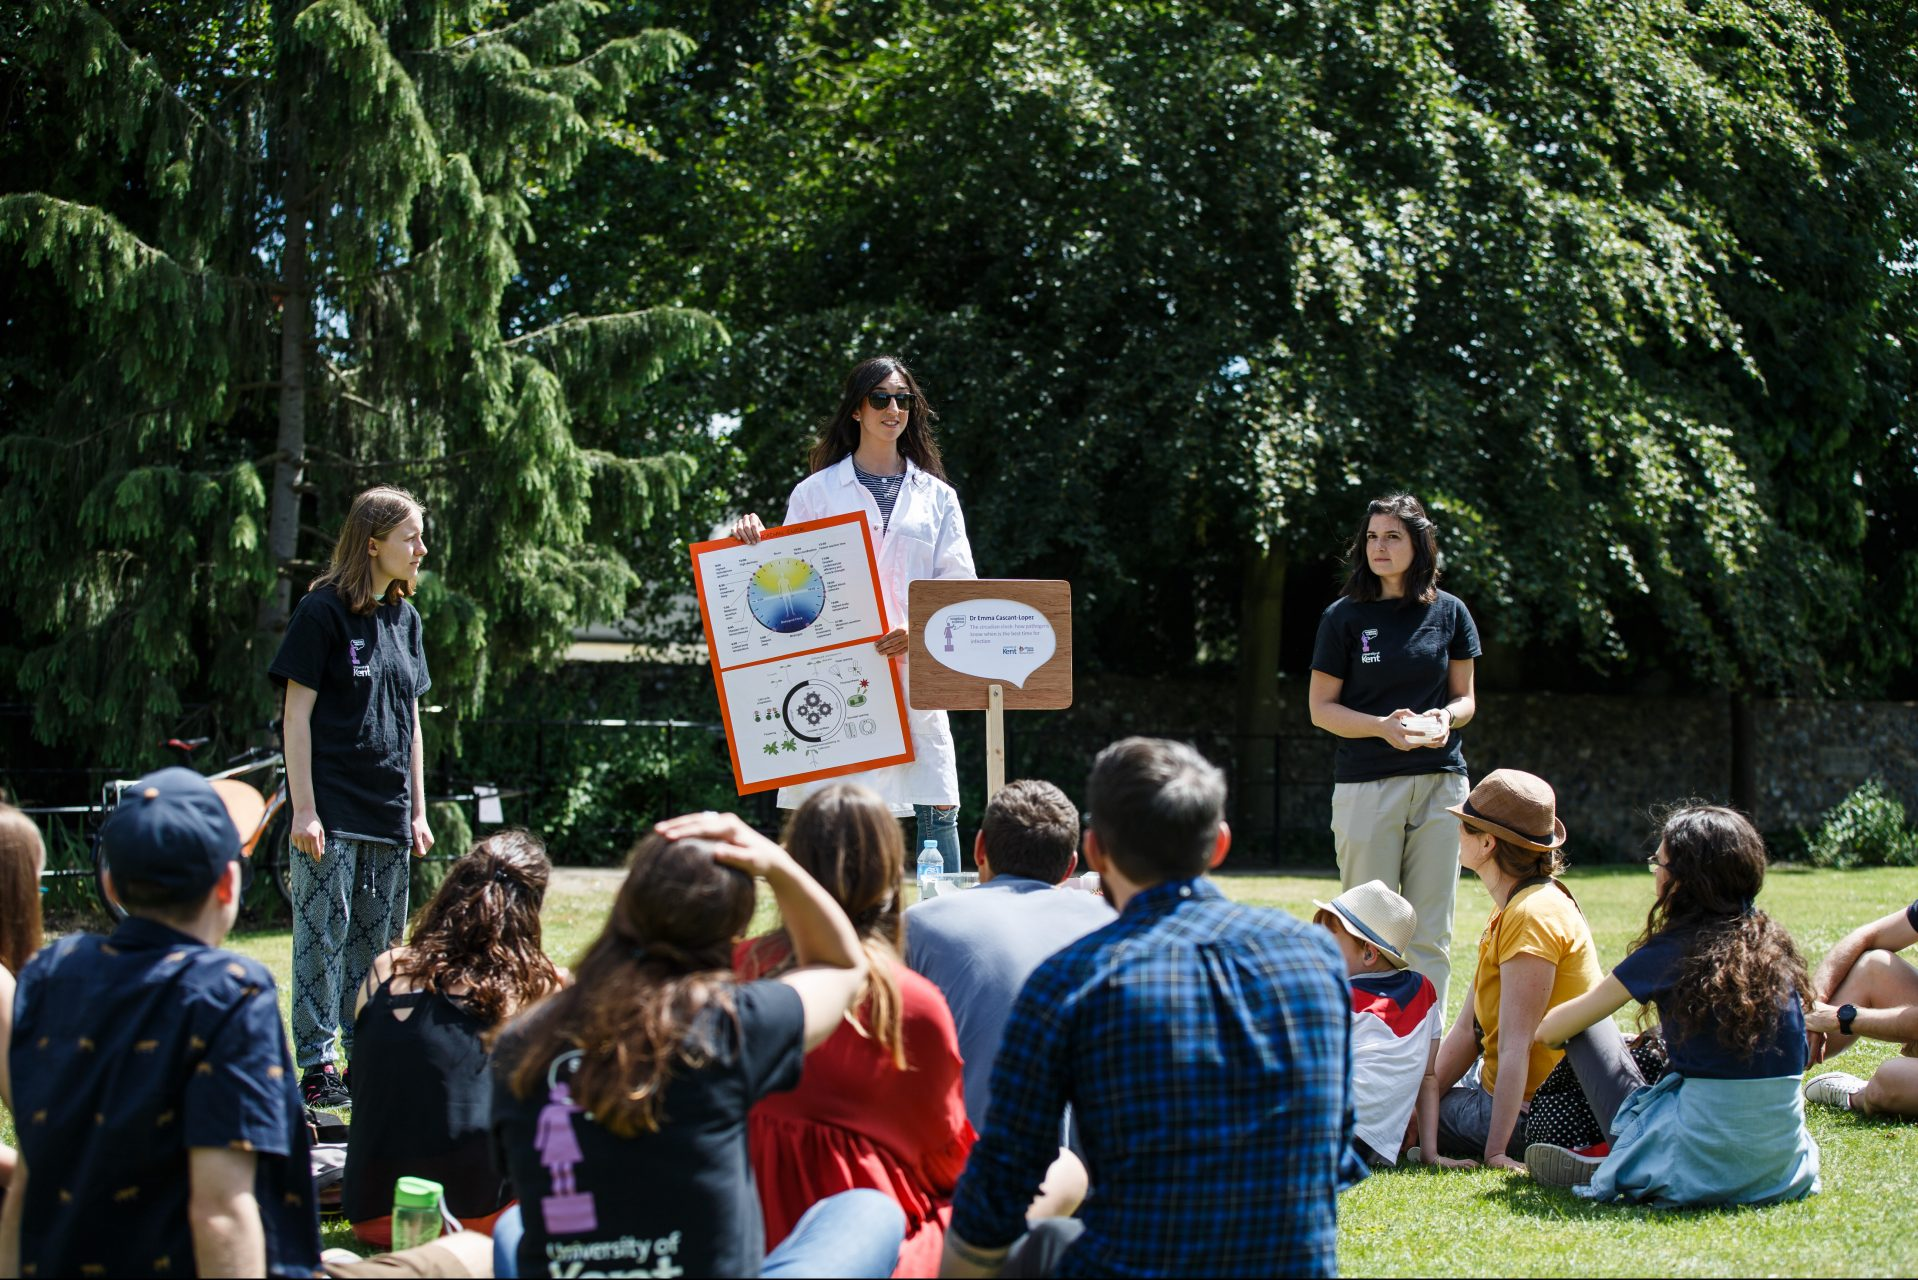 Soapbox Science returns to Canterbury after a successful 2018 event.